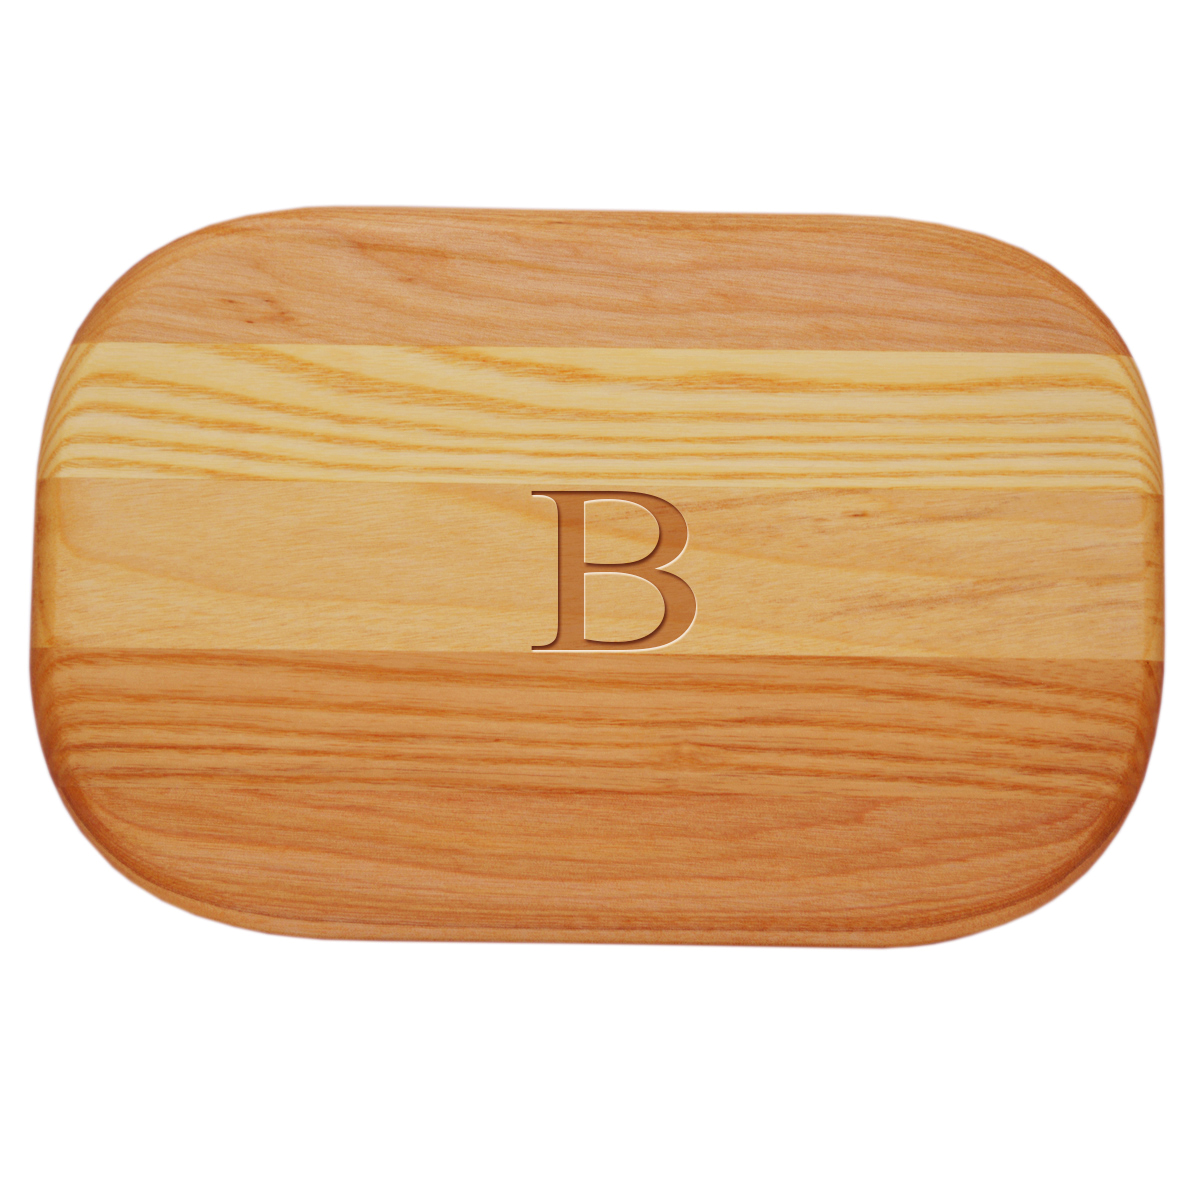 Small Everyday Monogrammed Wood Cutting Board Classic